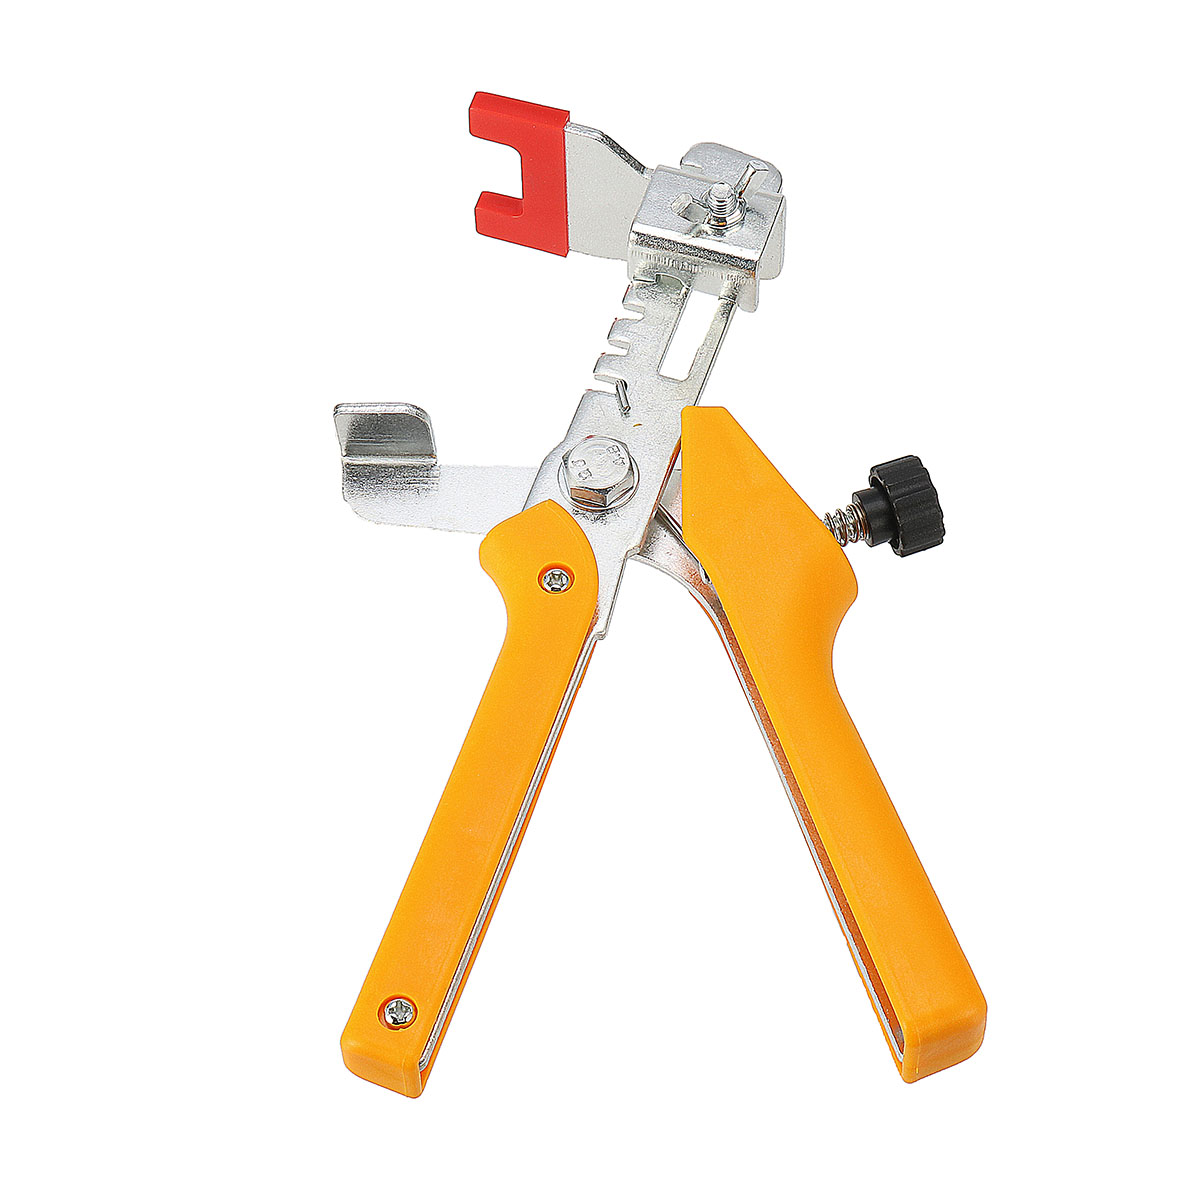 Floor Pliers Tool For Ceramic Tile Leveling System Tiling